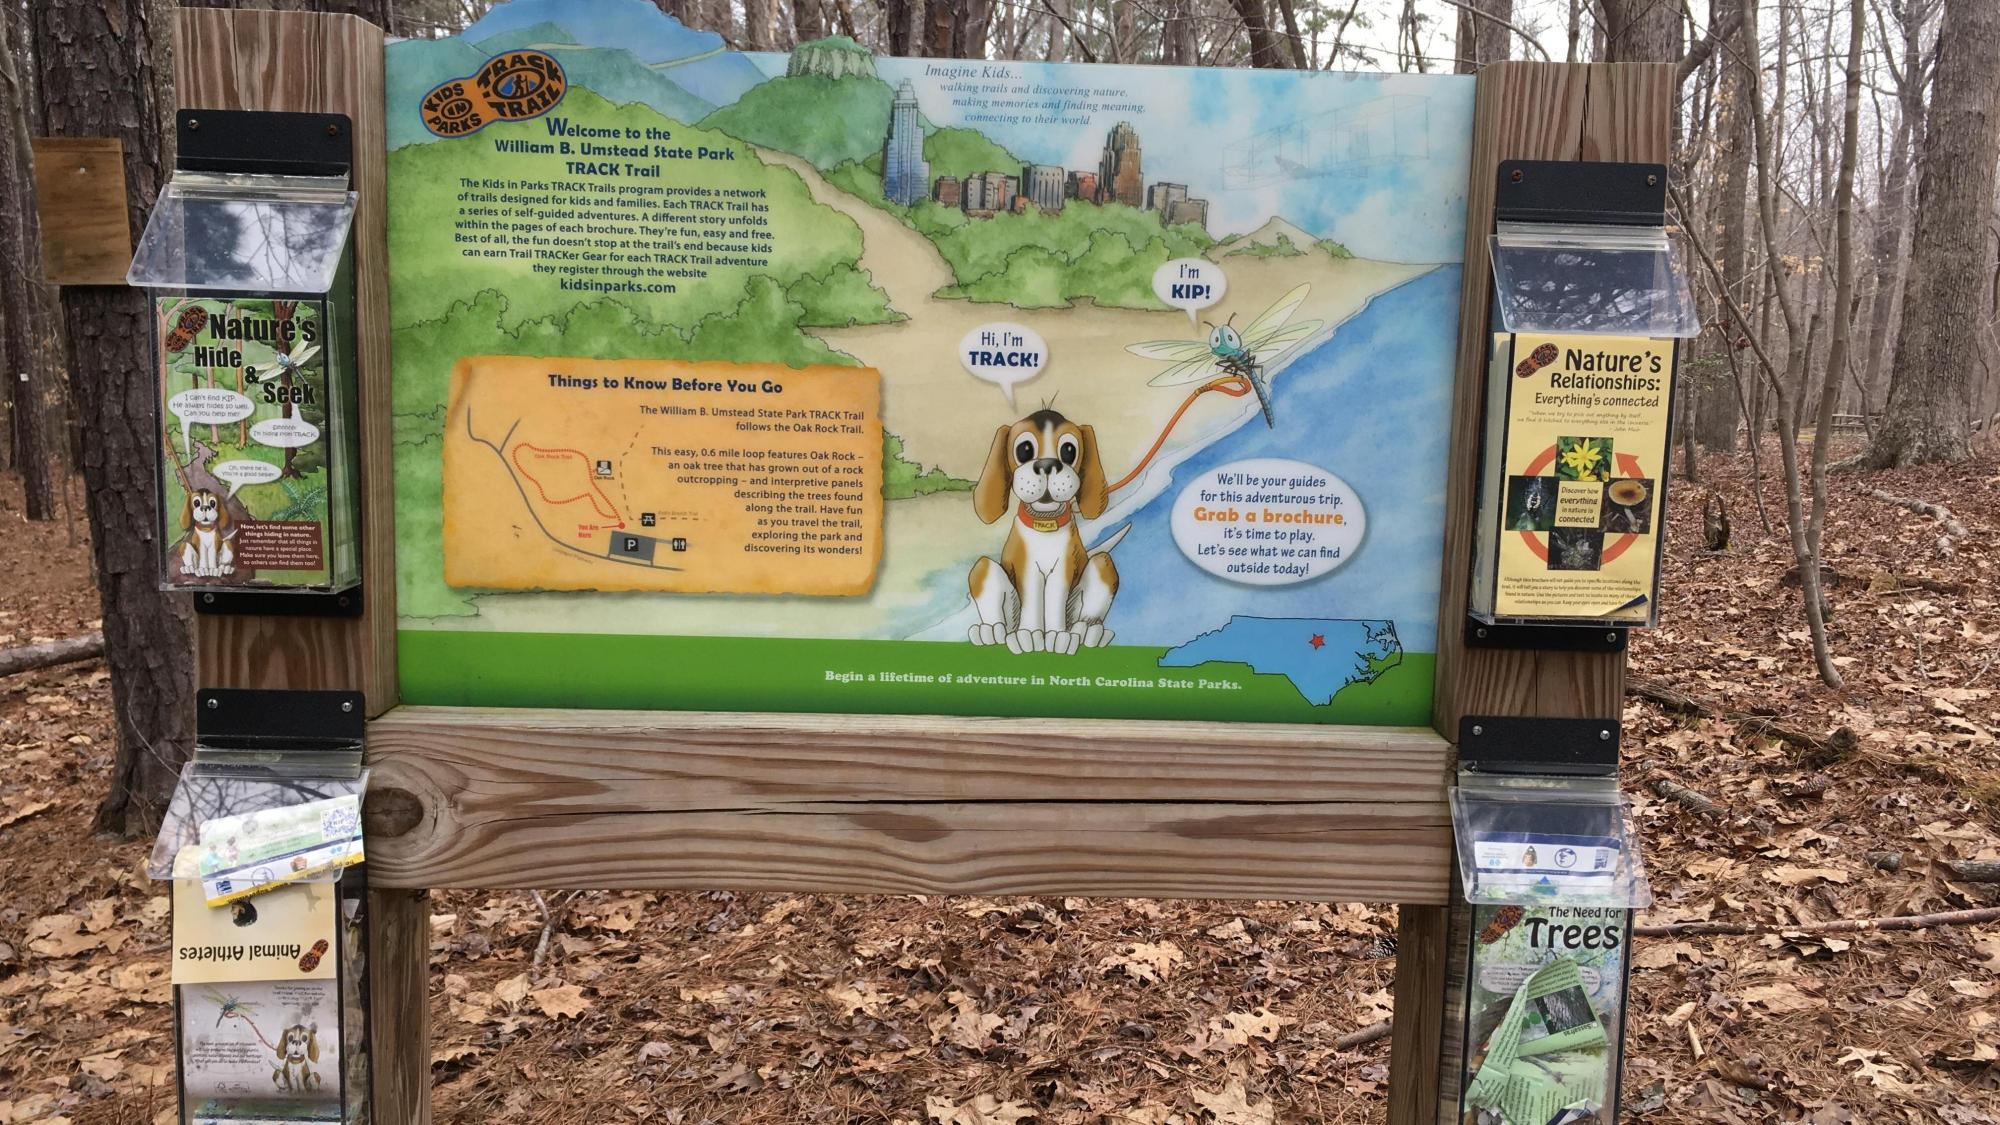 Go for a hike: Four new kid friendly TRACK Trails open in